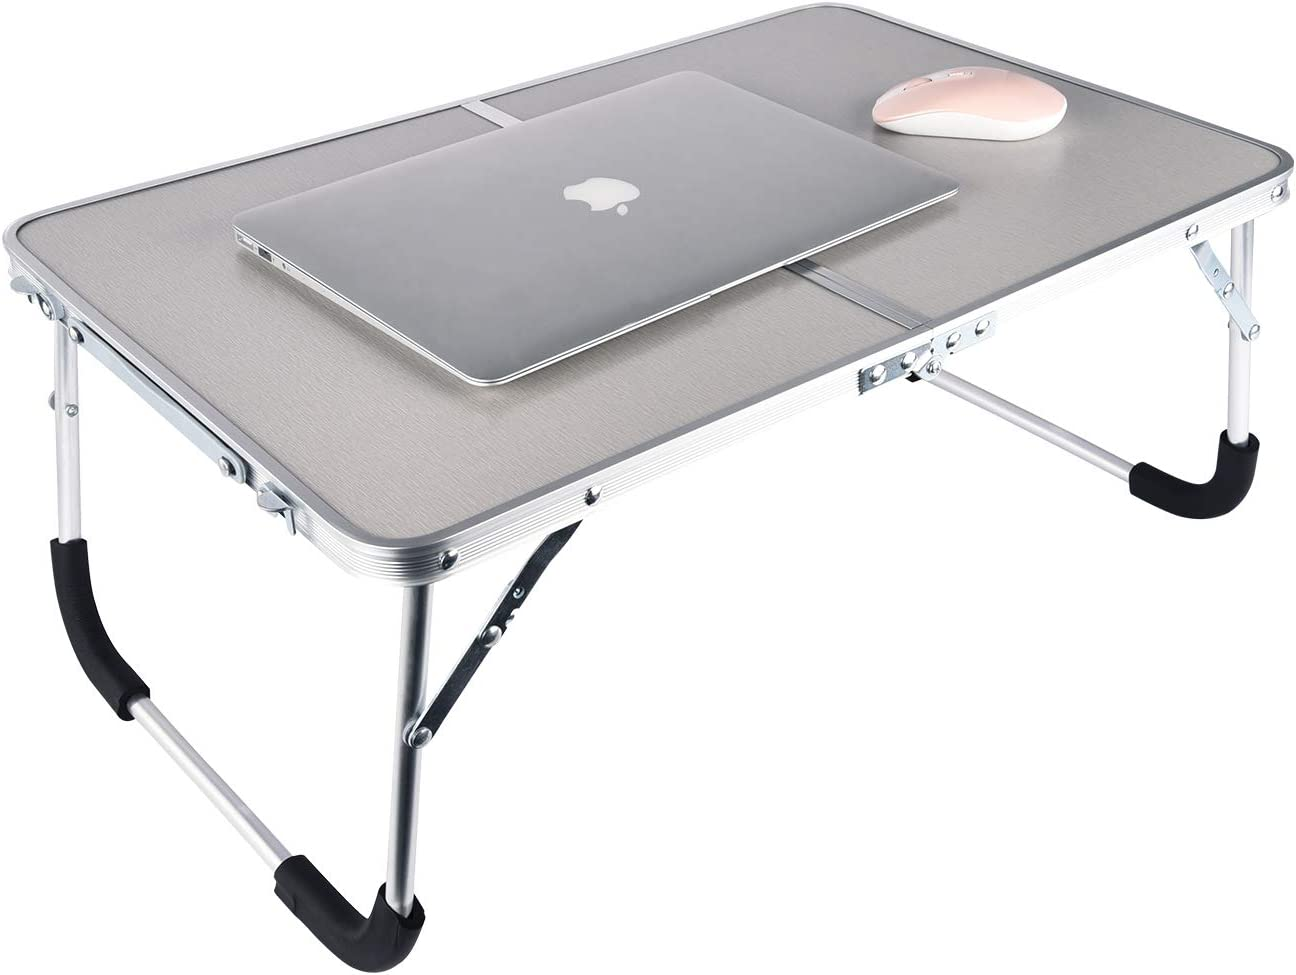 SISFORCE Foldable Laptop Table,Bed Desk Breakfast Serving Bed Tray,Portable Mini Picnic Desk Sofa Breakfast Tray, Notebook Stand Reading Holder-Gray